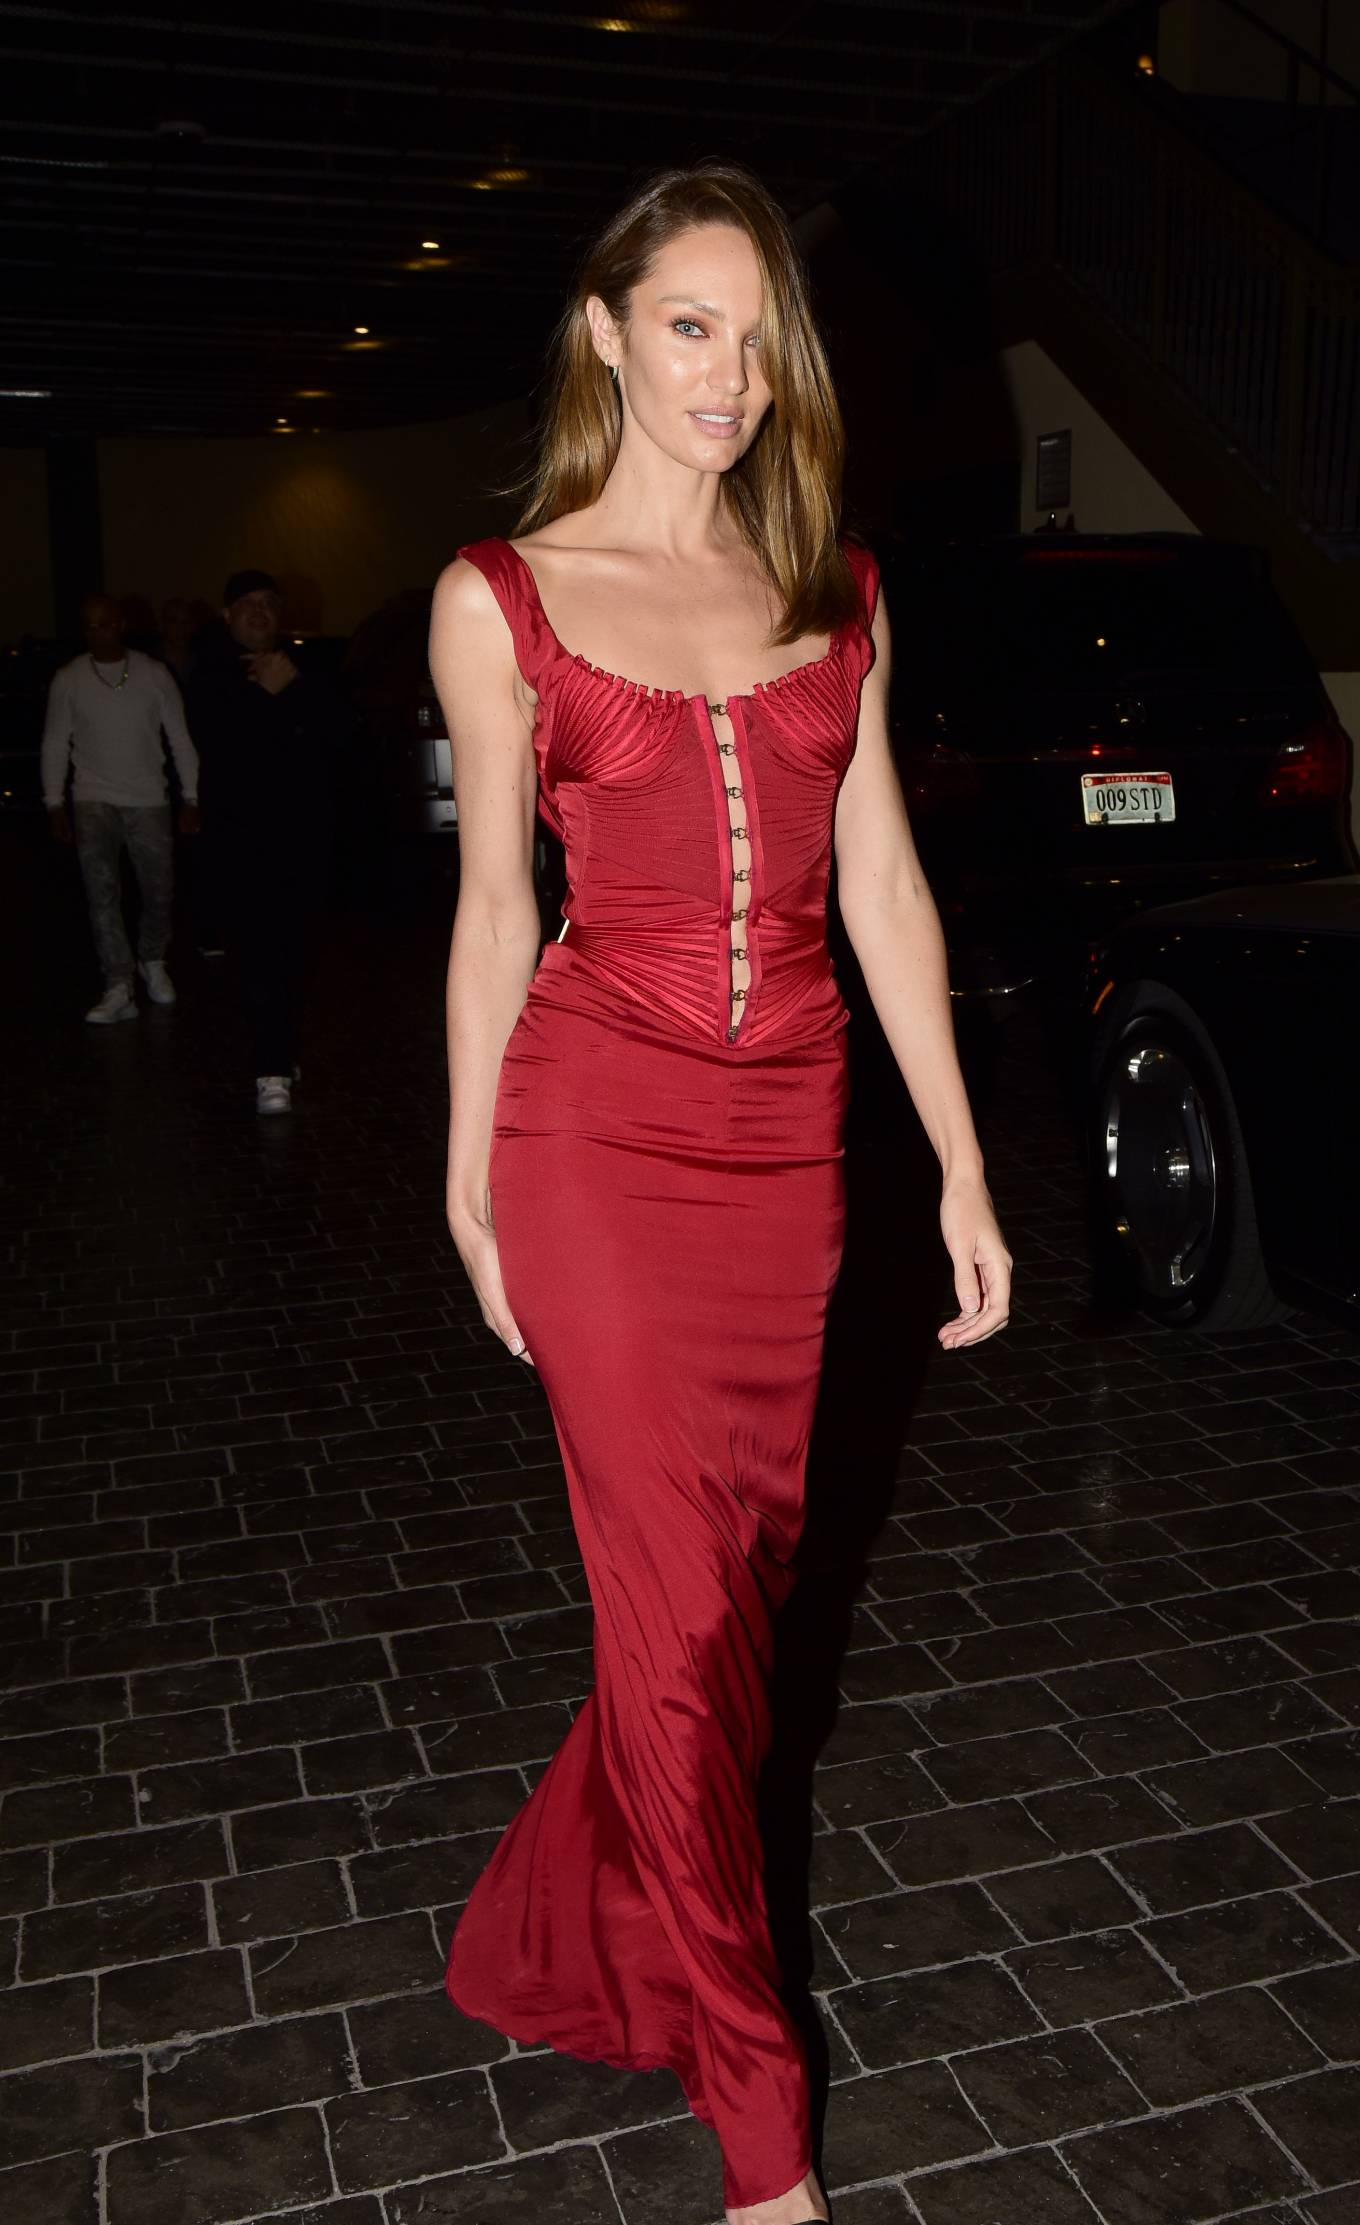 Candice Swanepoel 2021 : Candice Swanepoel – Leaves Casa Cipriani during New York Fashion Week-01